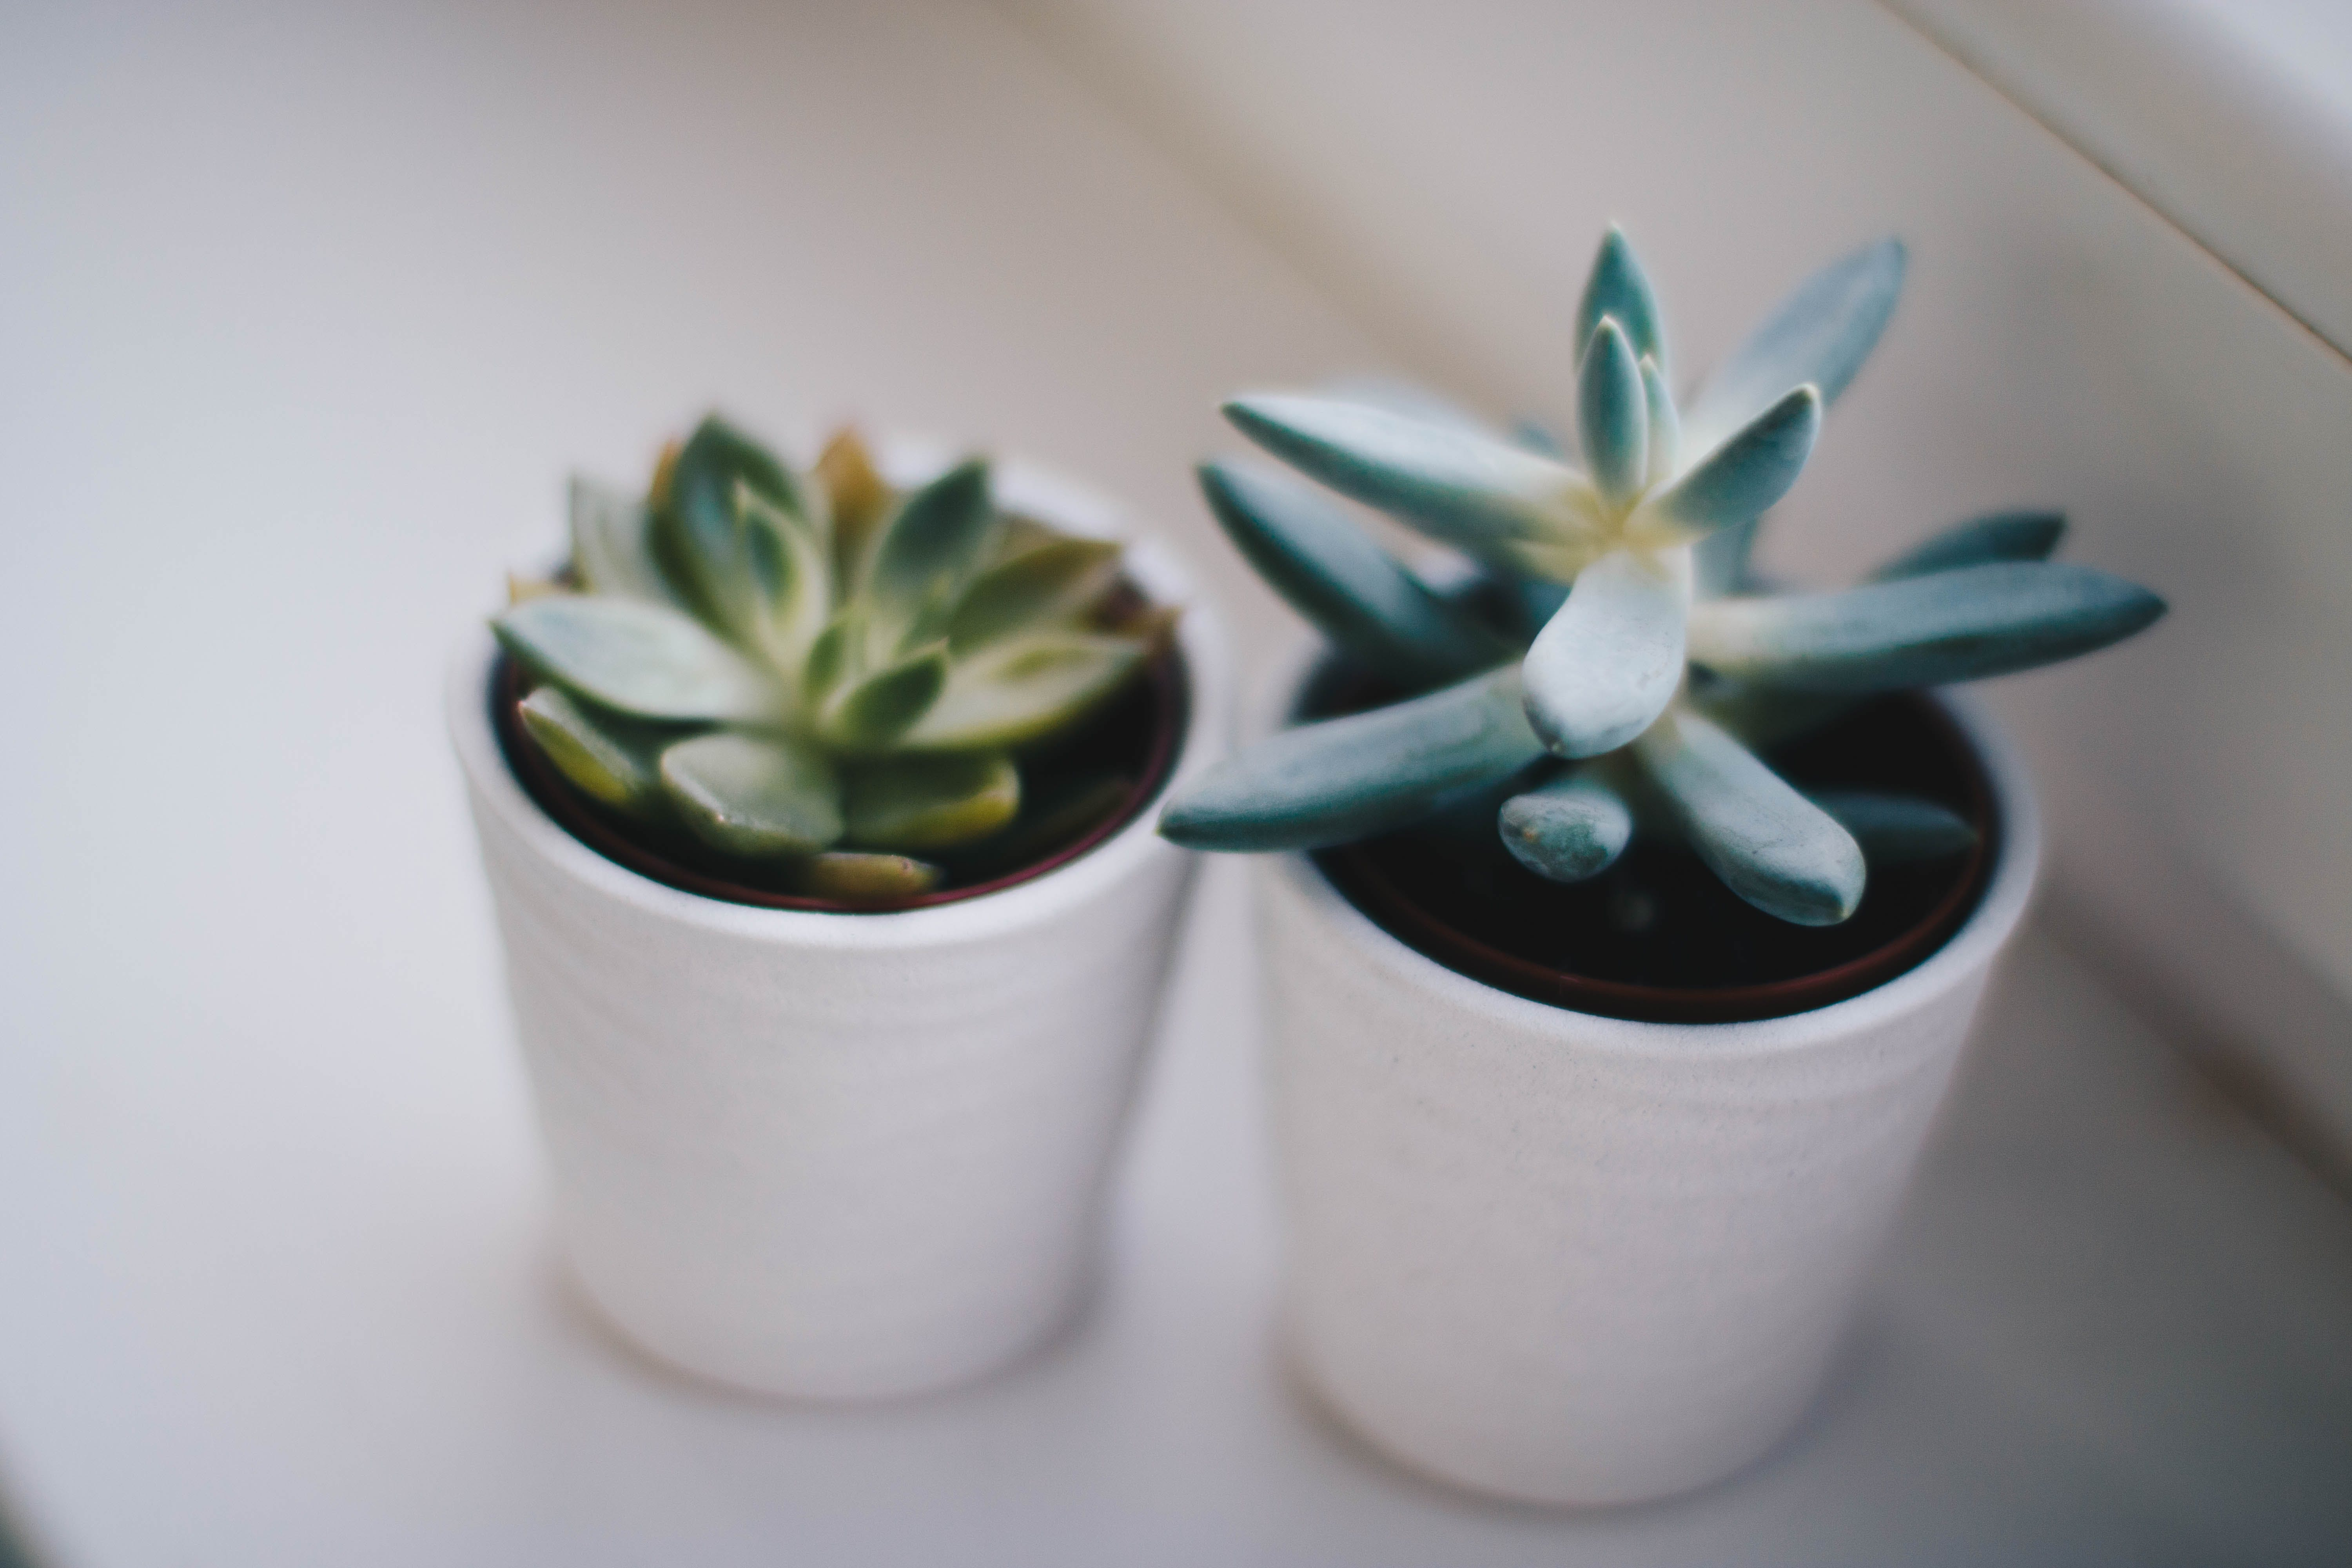 Two Green Succulent Plants